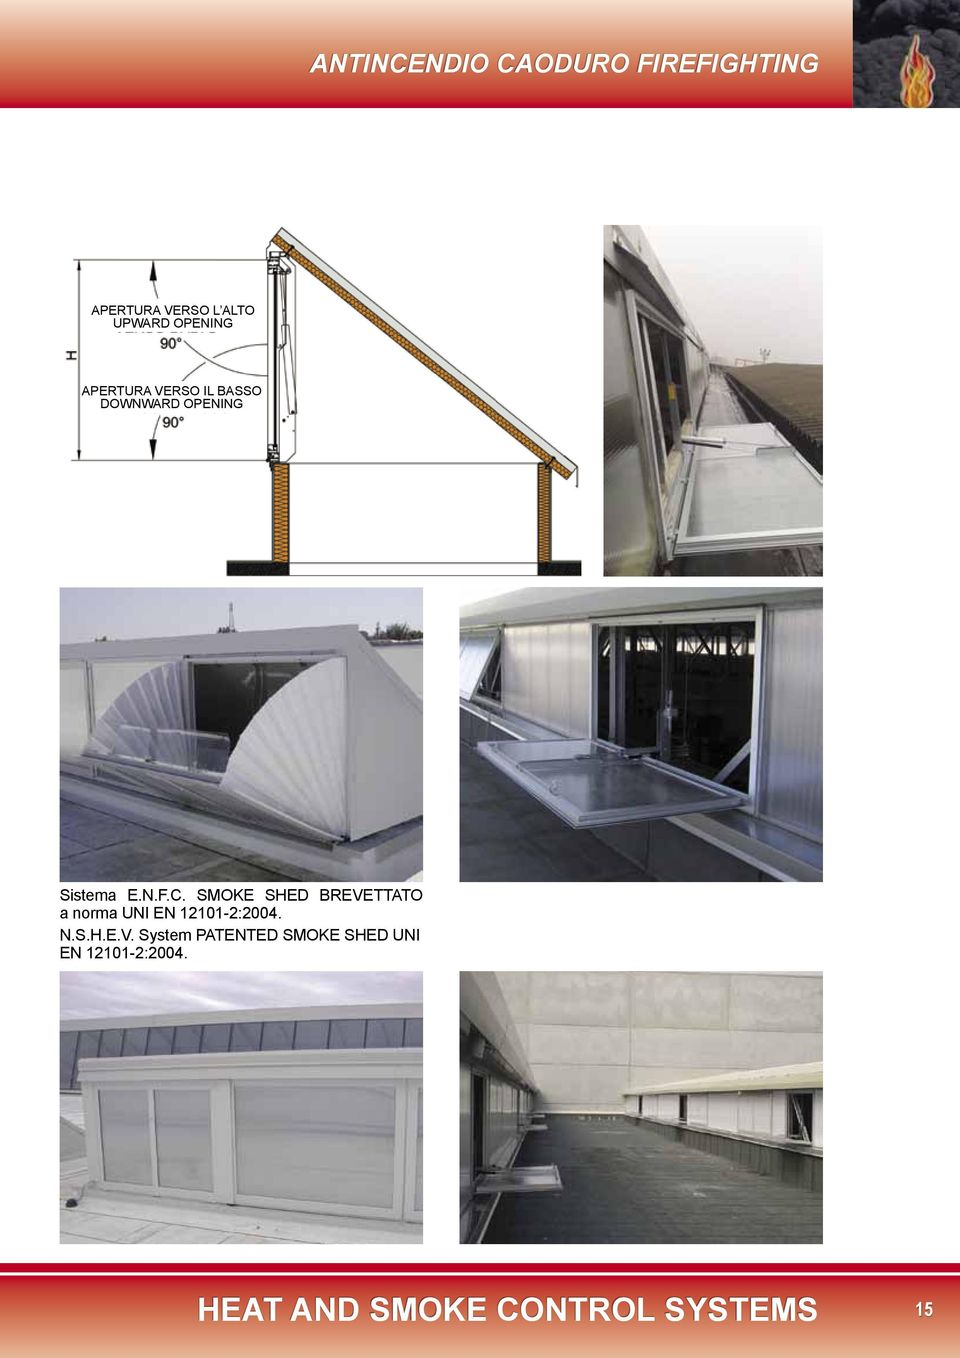 SMOKE SHED BREVETTATO a norma UNI EN 12101-2:2004. N.S.H.E.V. System PATENTED SMOKE SHED UNI EN 12101-2:2004.